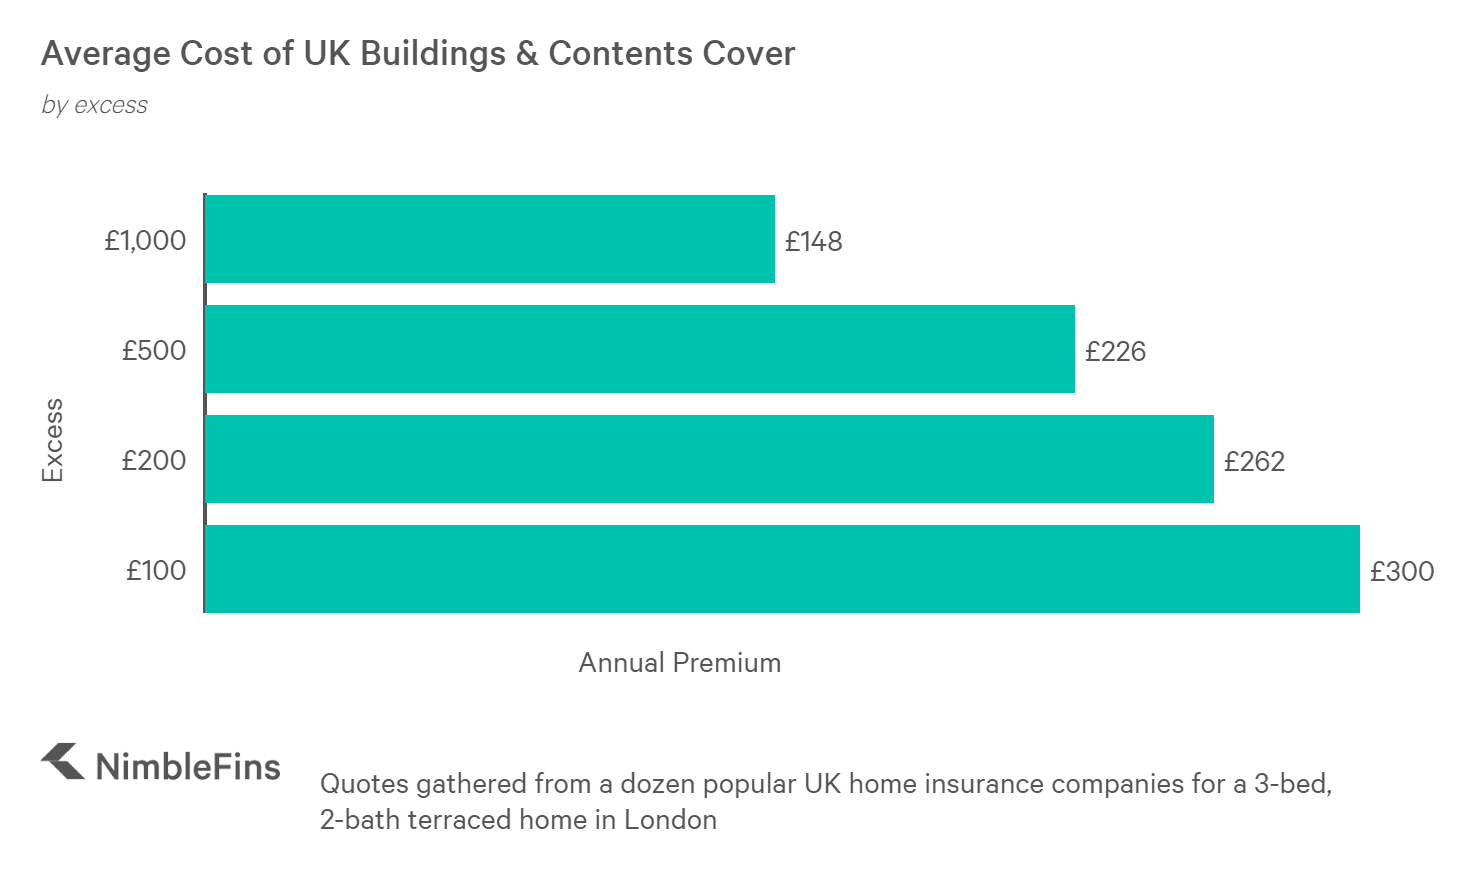 chart showing average home insurance premium by excess